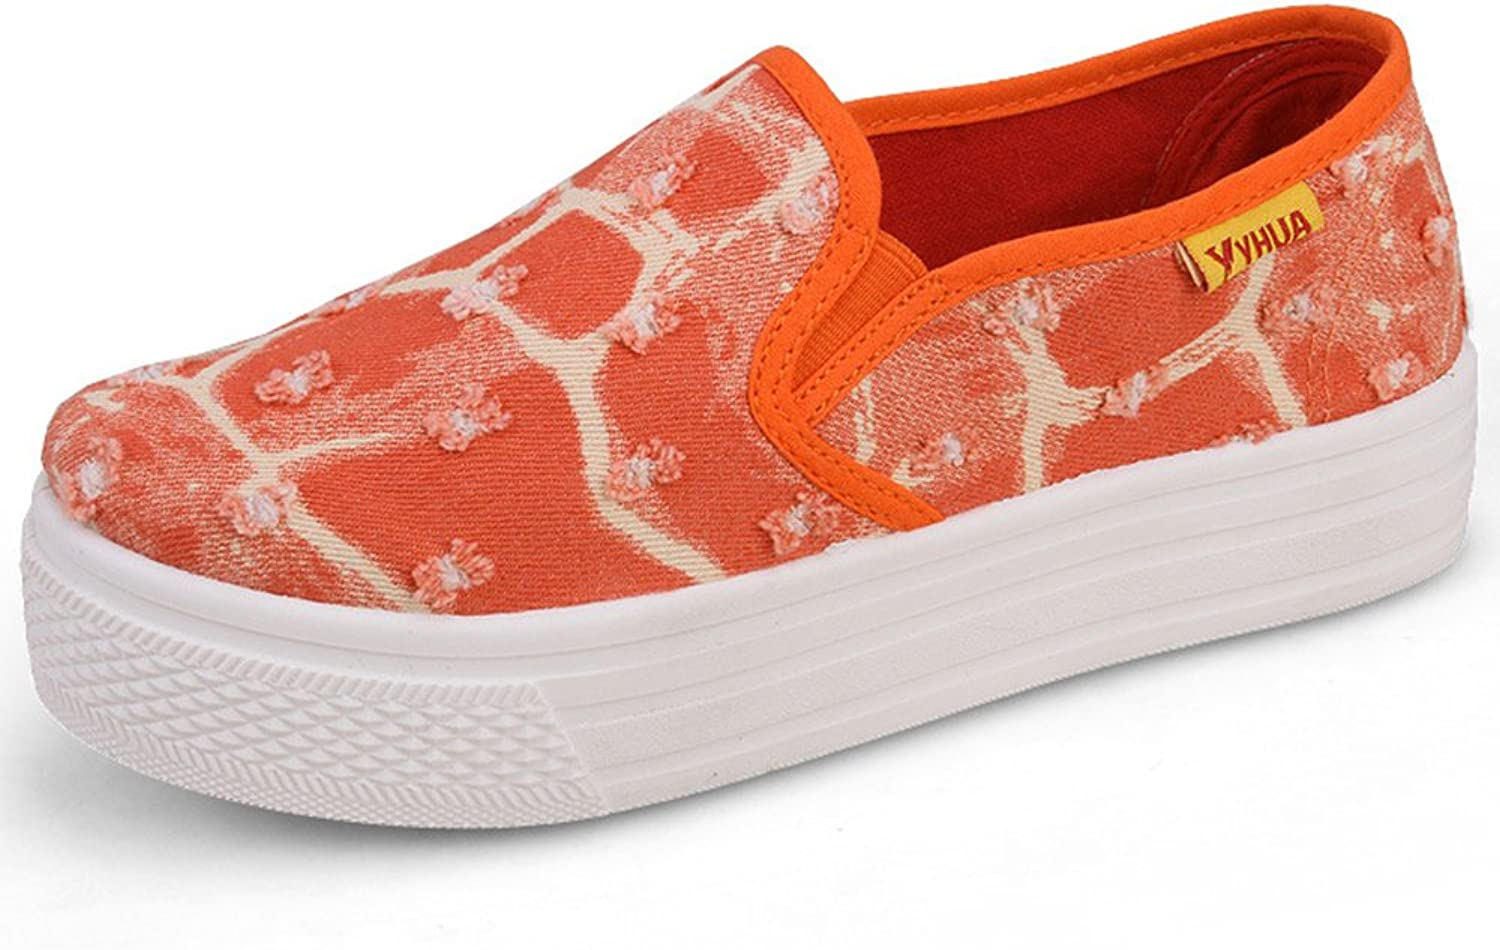 BININBOX Womens Girls Canvas shoes Casual Slip-On shoes Platform shoes